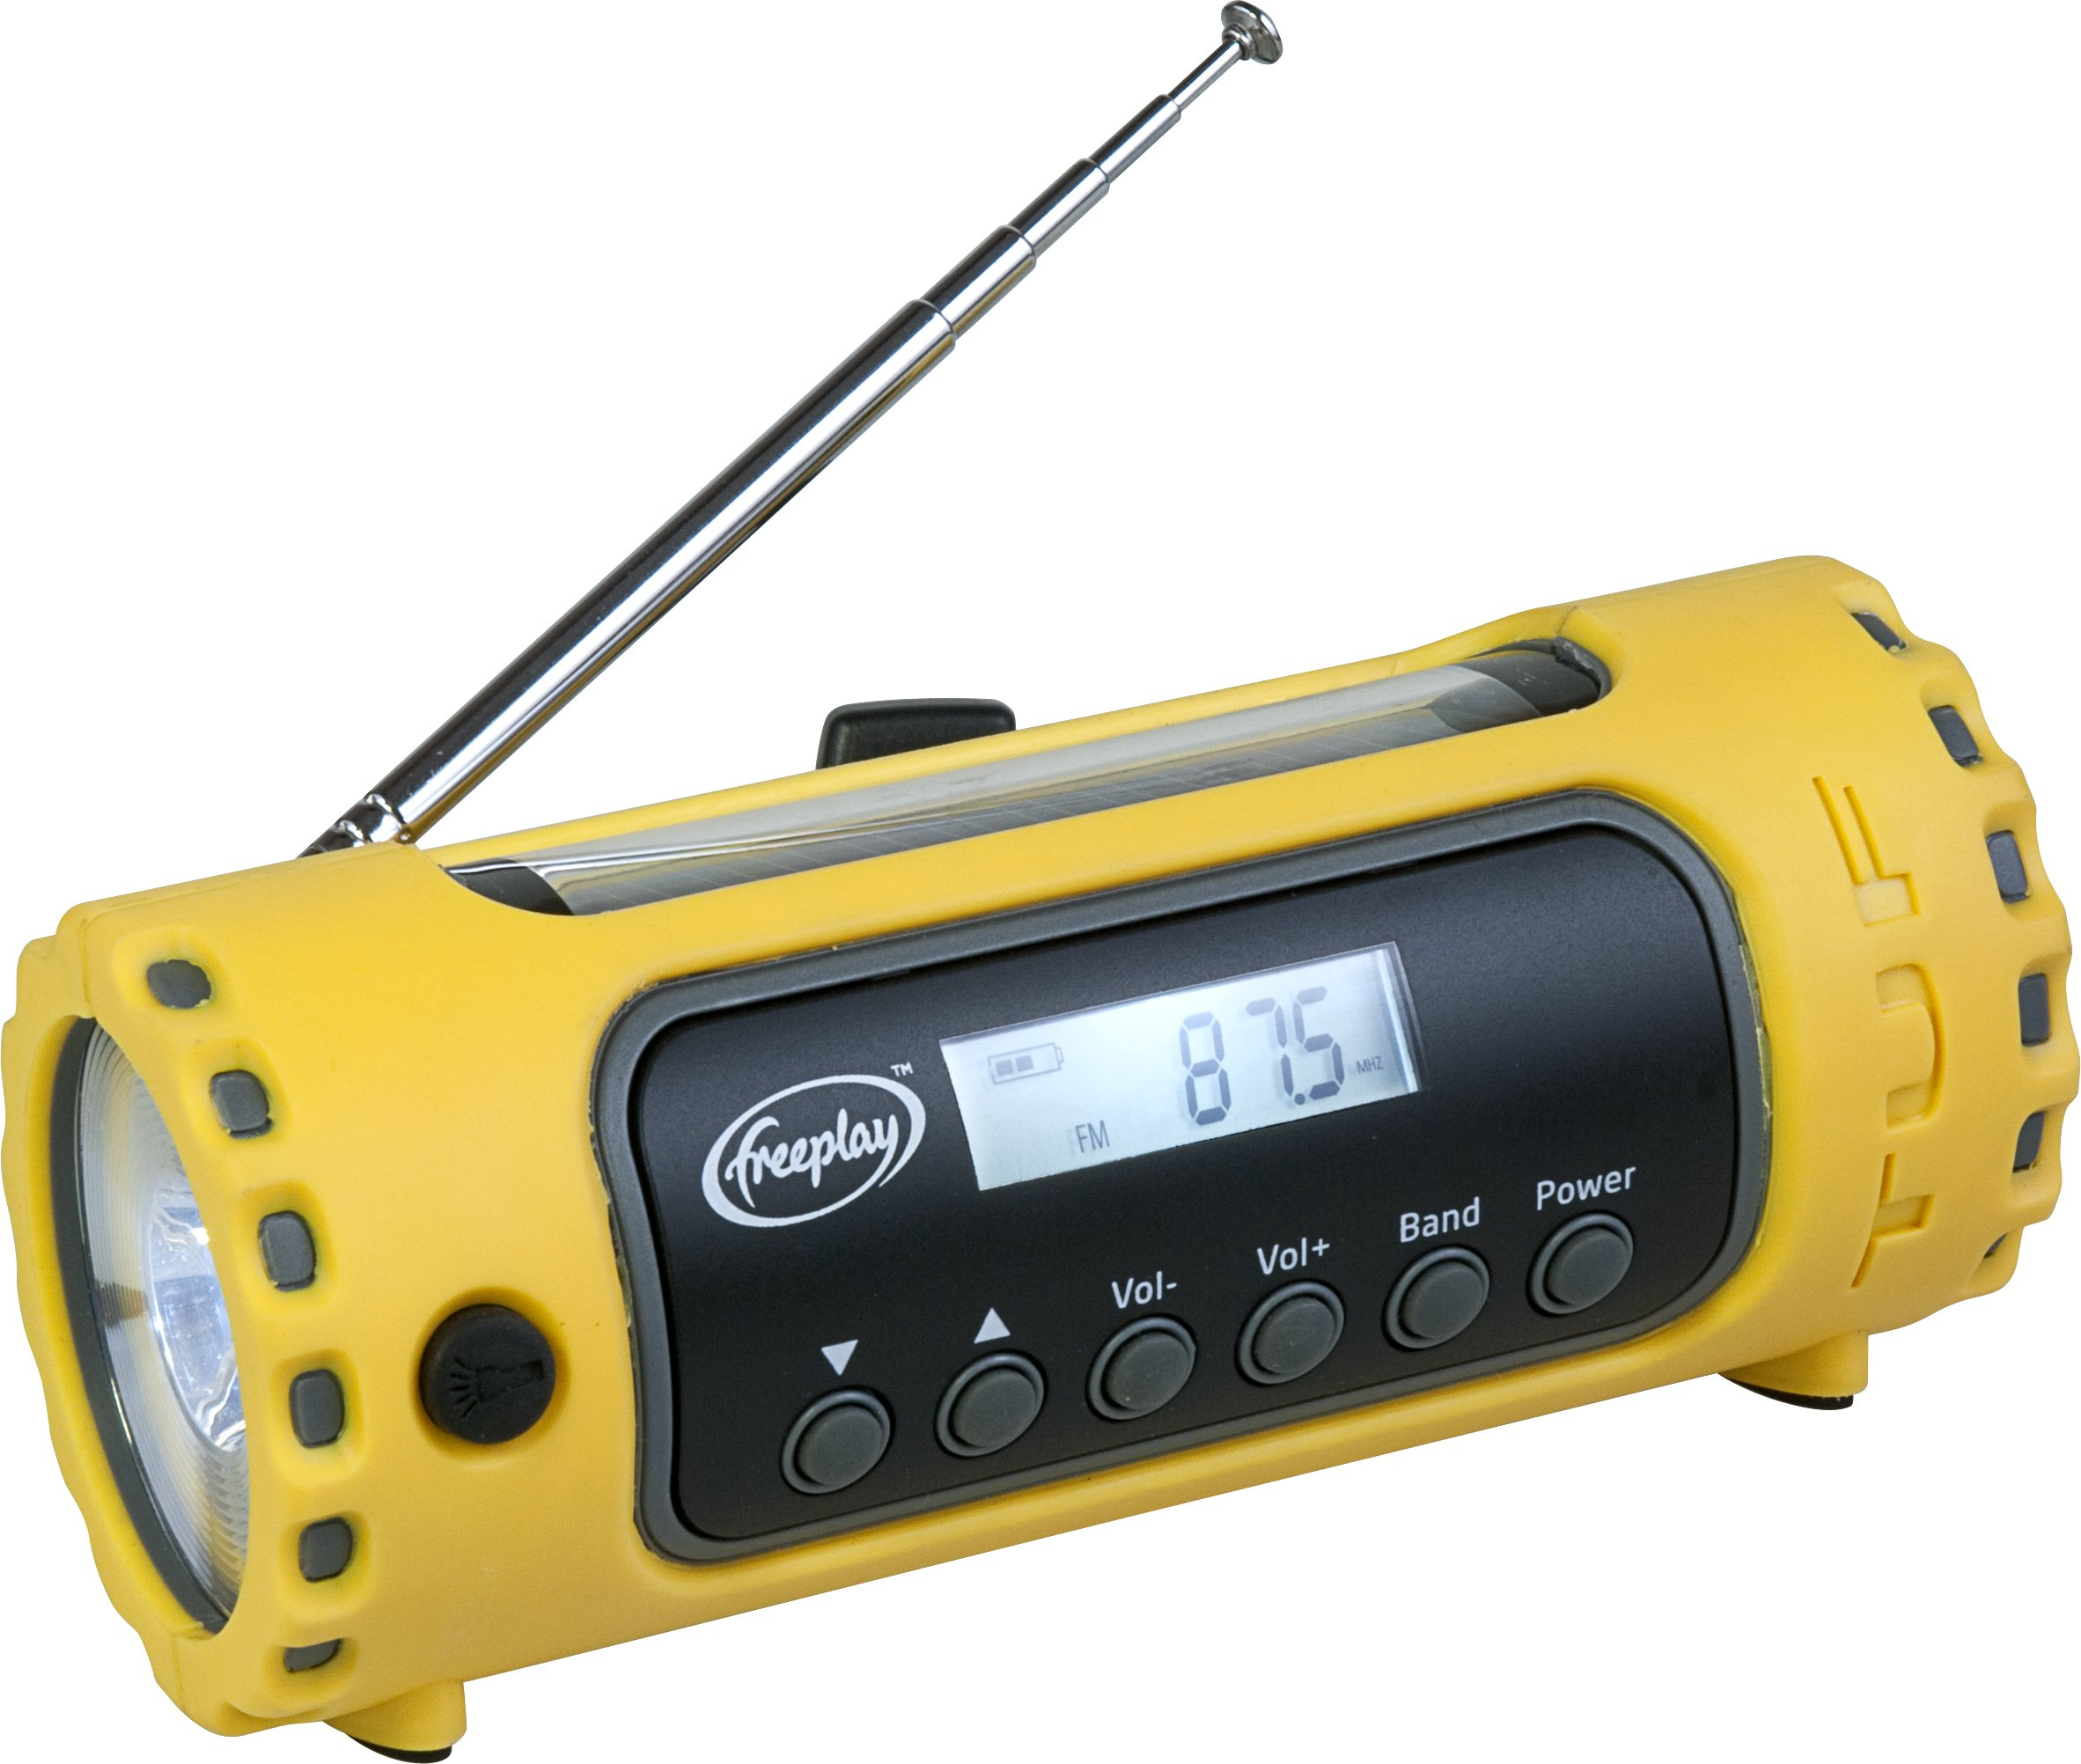 Freeplay Tuf Solar/Crank AM/FM/WX Radio with LED Flashlight by Freeplay